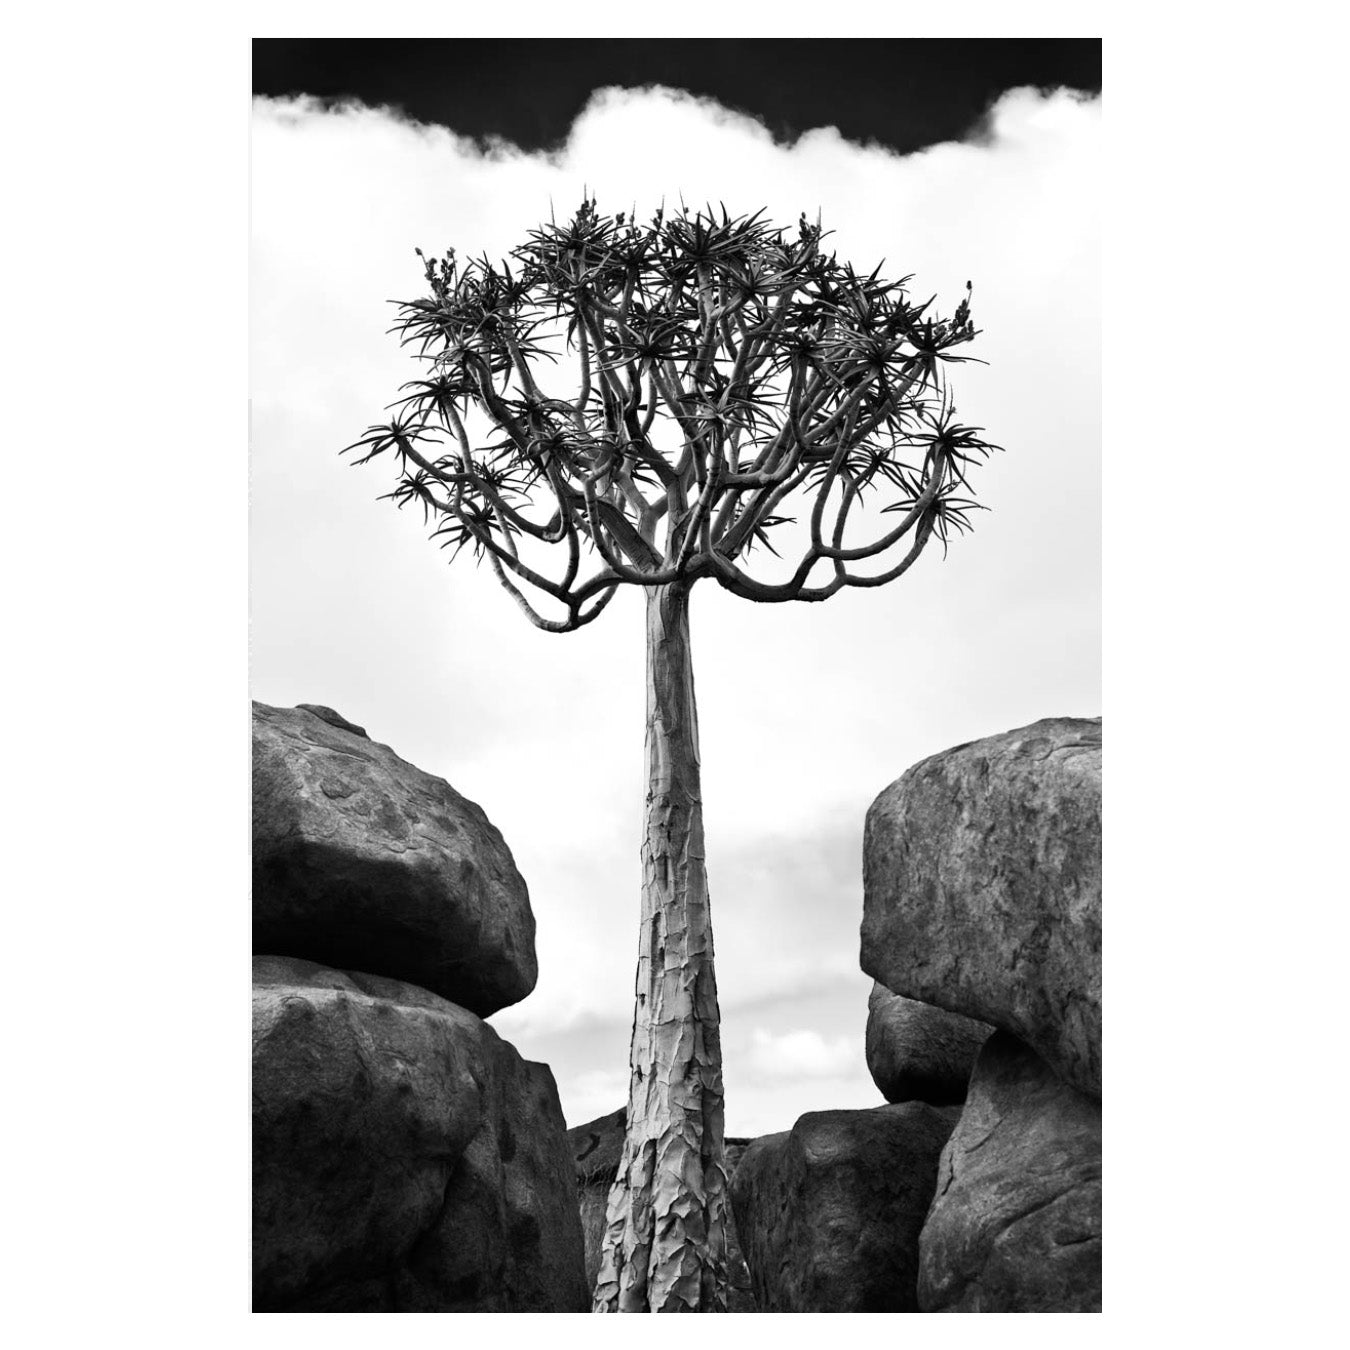 NAM_41 by David Ballam at SARZA. art prints, David Ballam, framed canvas, Kokerboom V, Landscapes, limited edition, Namibia, Rough cuts, wall art